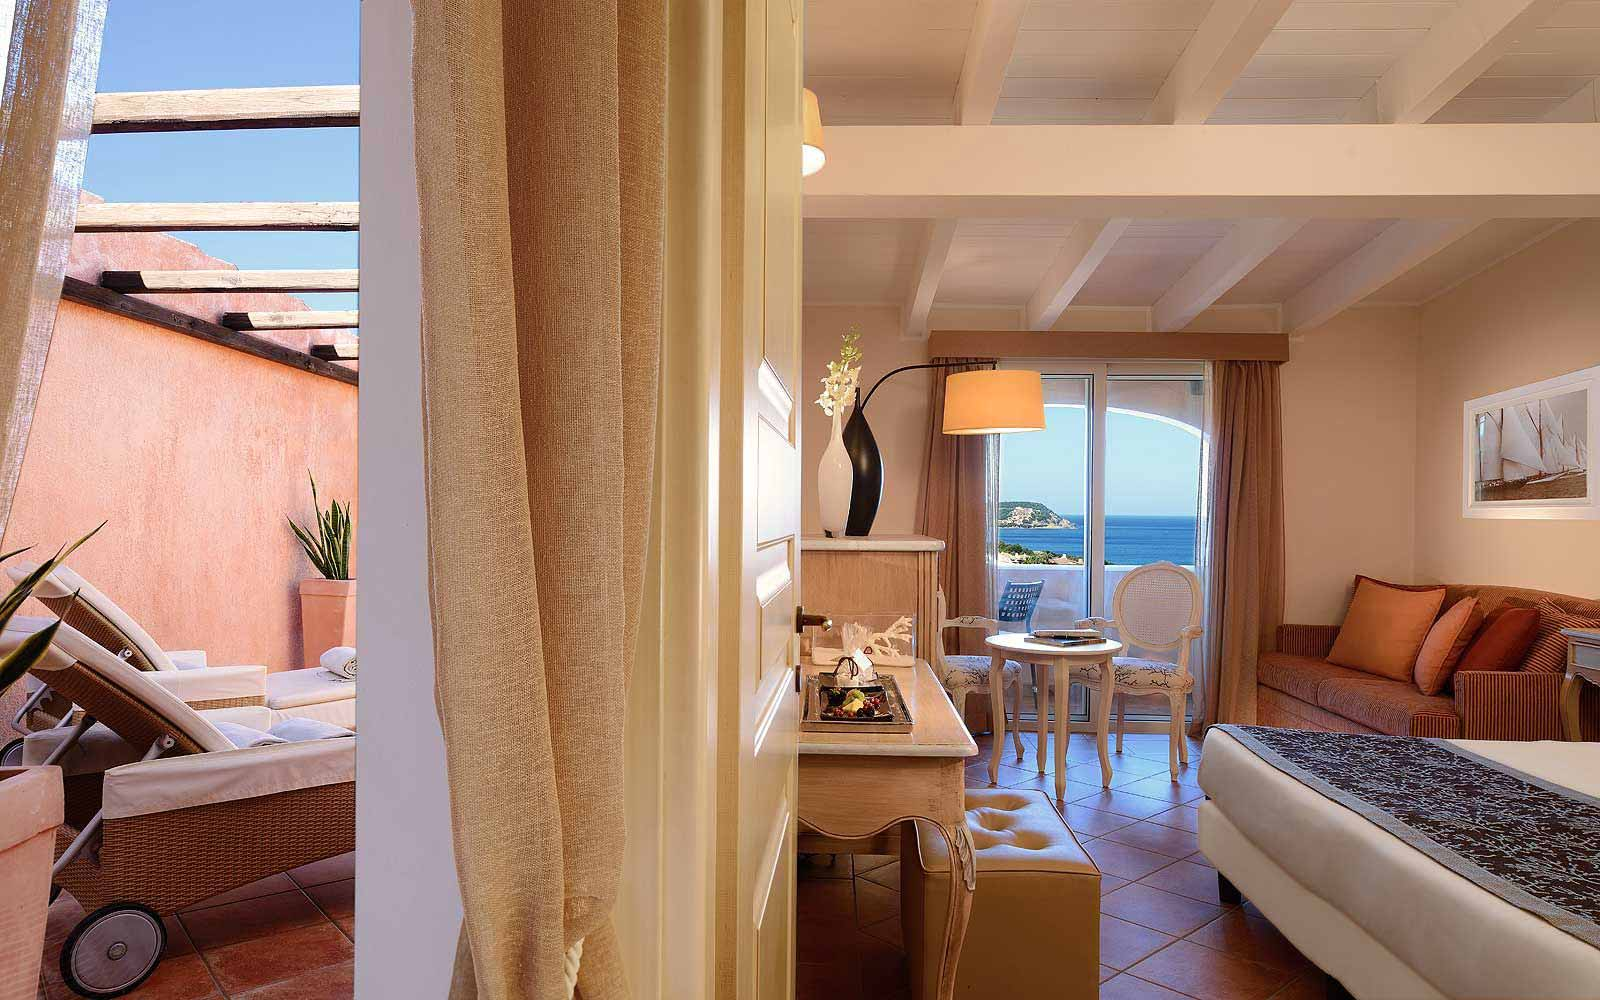 Deluxe Room with private terrace at Colonna Pevero Hotel